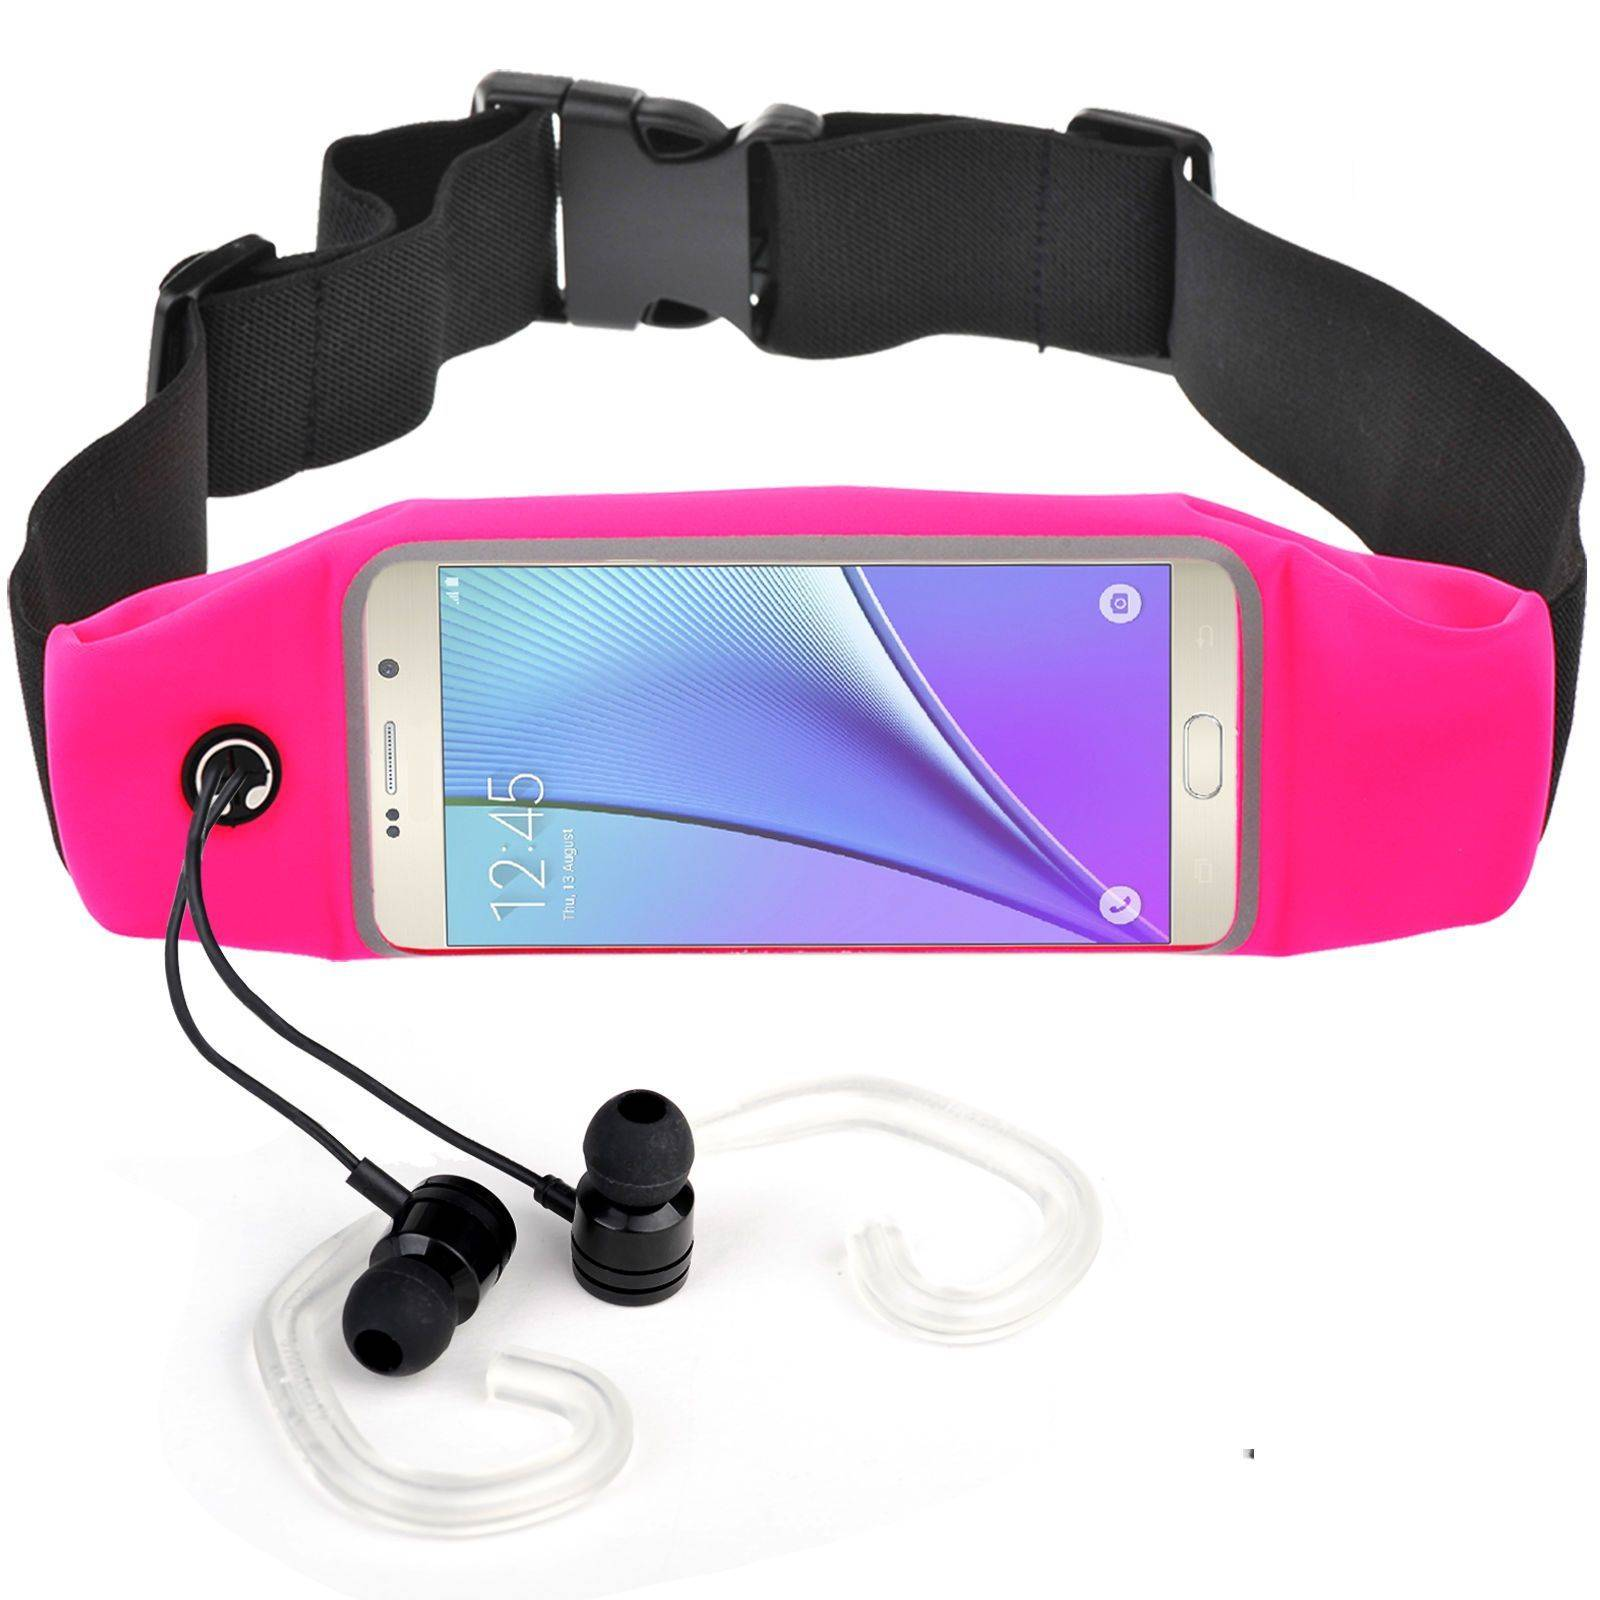 Sport Waist Belt  Bag With Touch screen Runner Pouch for iPhone6 6S Plus Galaxy S5 S6 EDGE SWB01